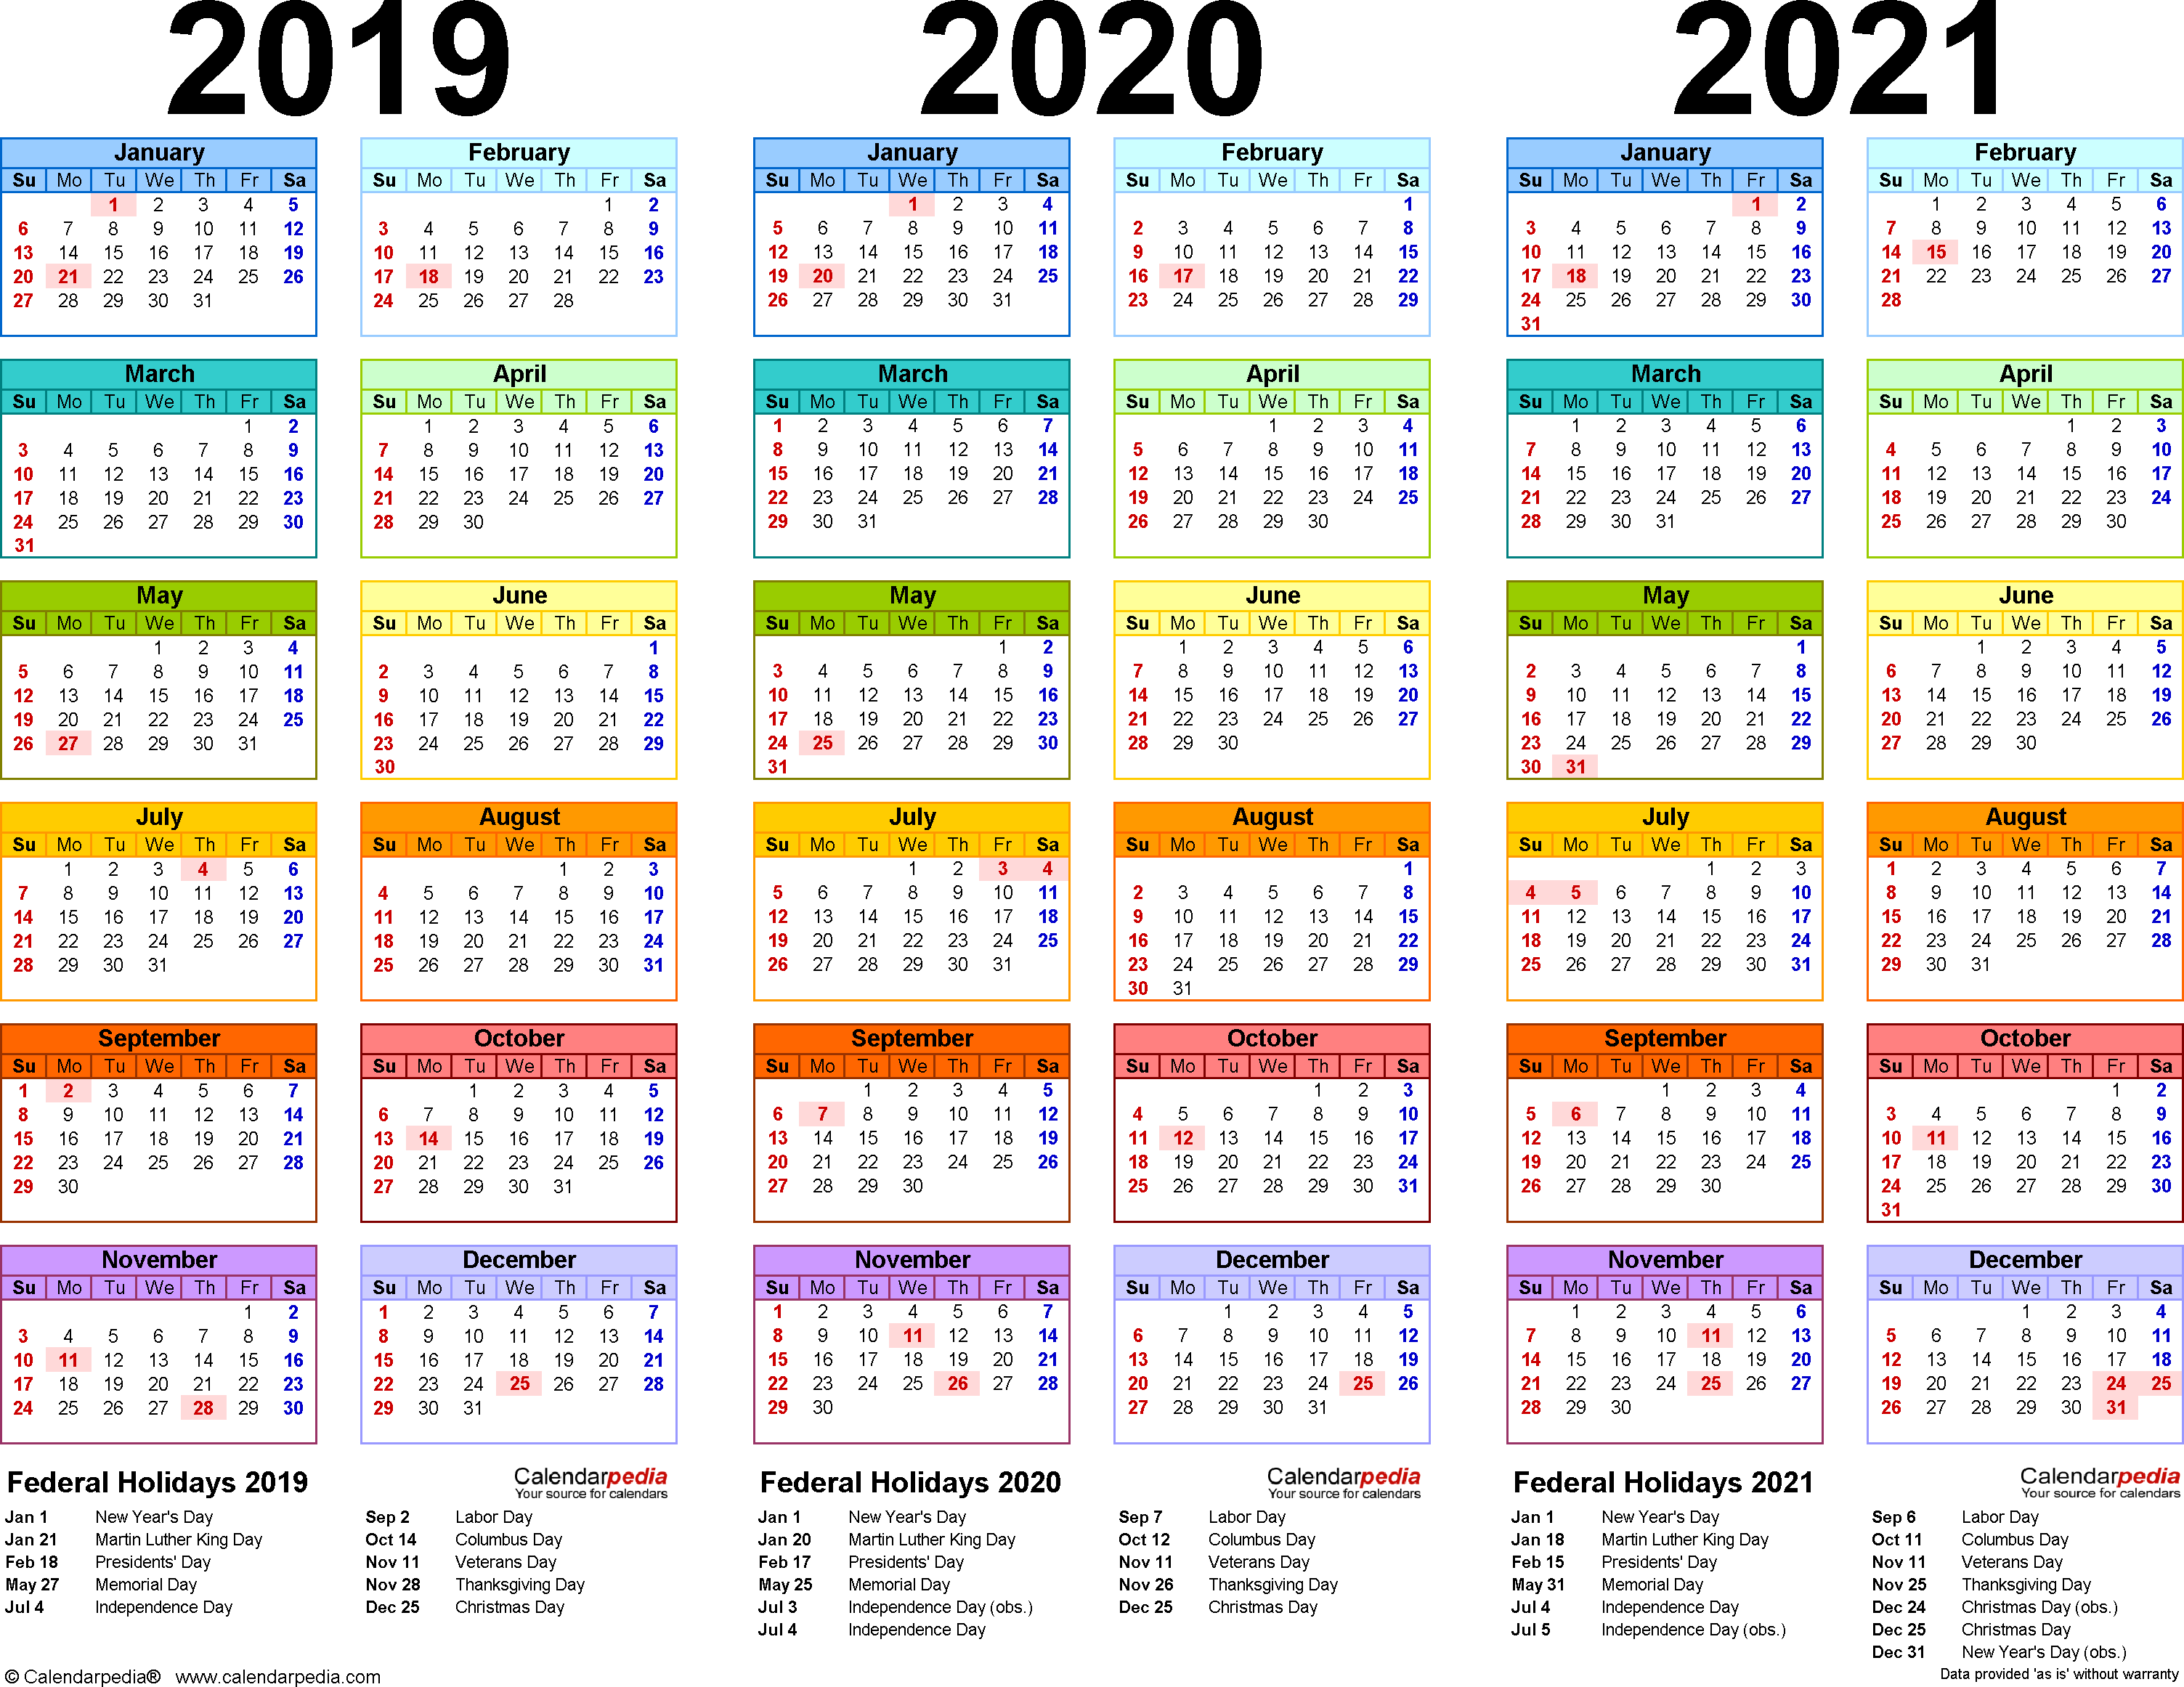 Next Year Calendar 2019 Kalnirnay With 2020 2021 4 Three Printable Word Calendars